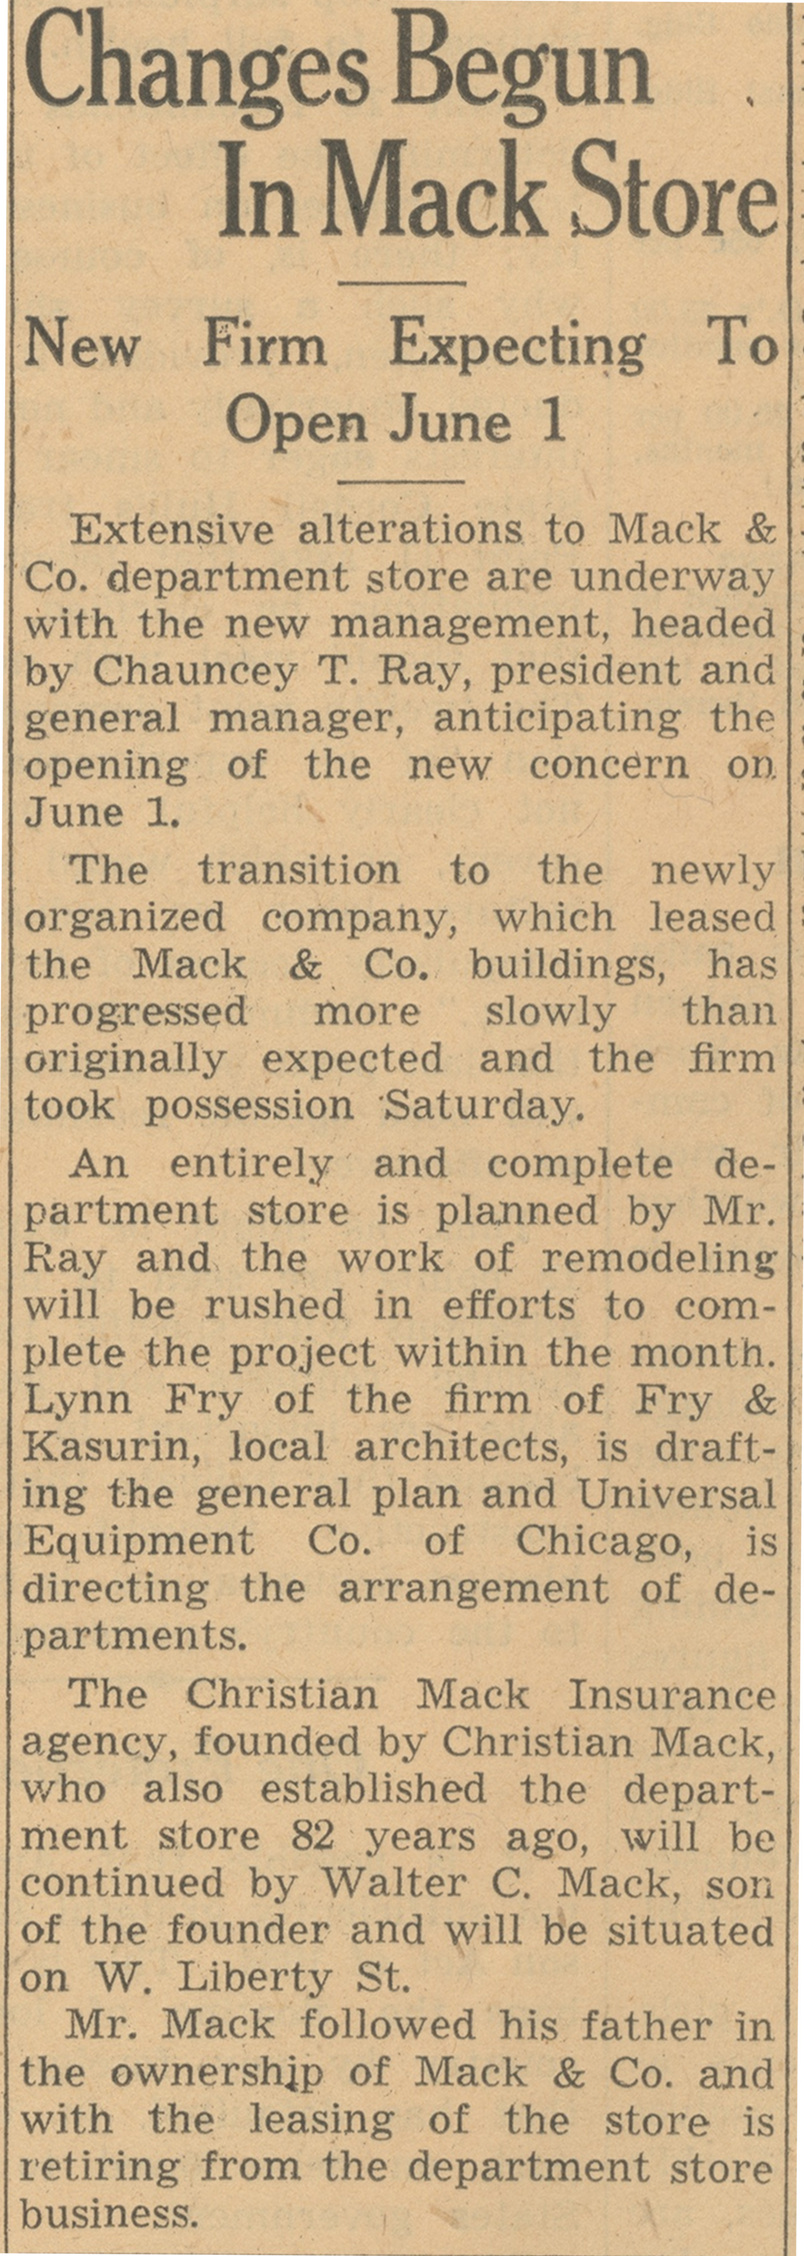 Changes Begun In Mack Store - New Firm Expecting To Open June 1 image